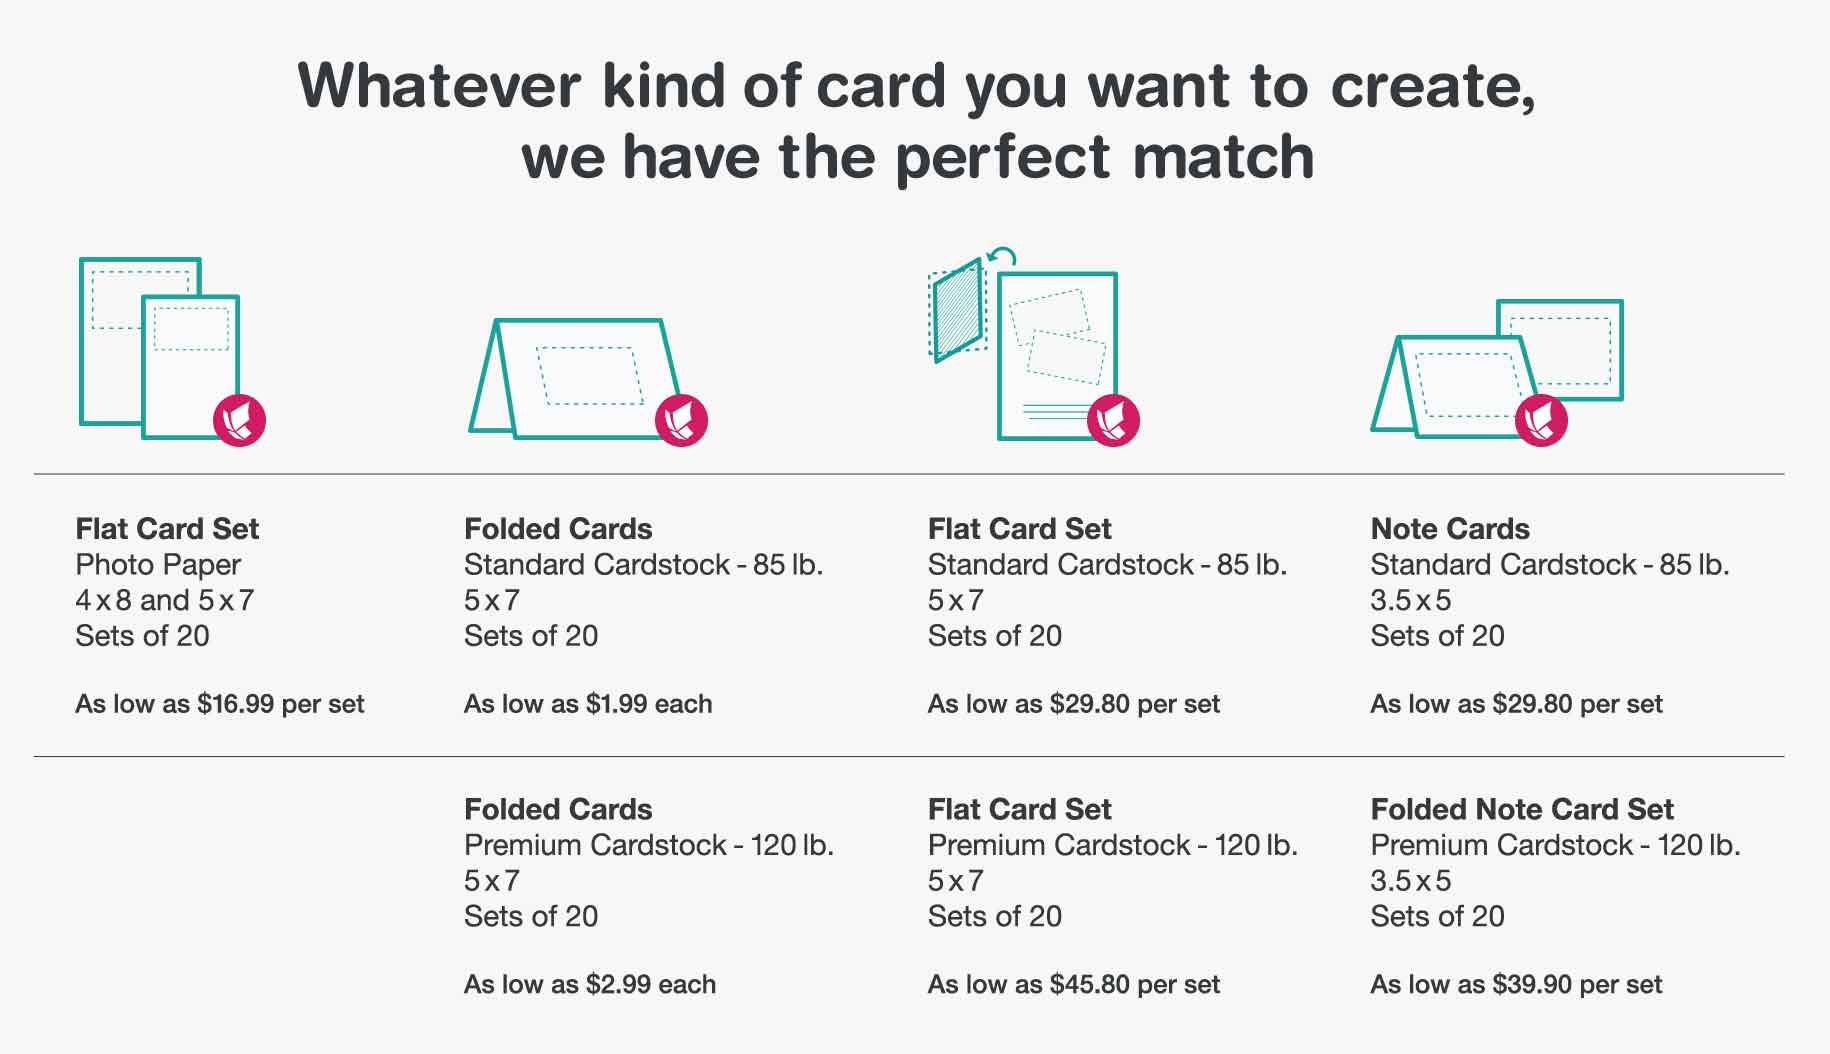 Whatever kind of card you want to create, we have the perfect match. Flat Card Set 4x8 and 5x7, Folded Cards 5x7, Flat Card Set 5x7, Note Cards 3.5x5, Folded Note Cards Set.